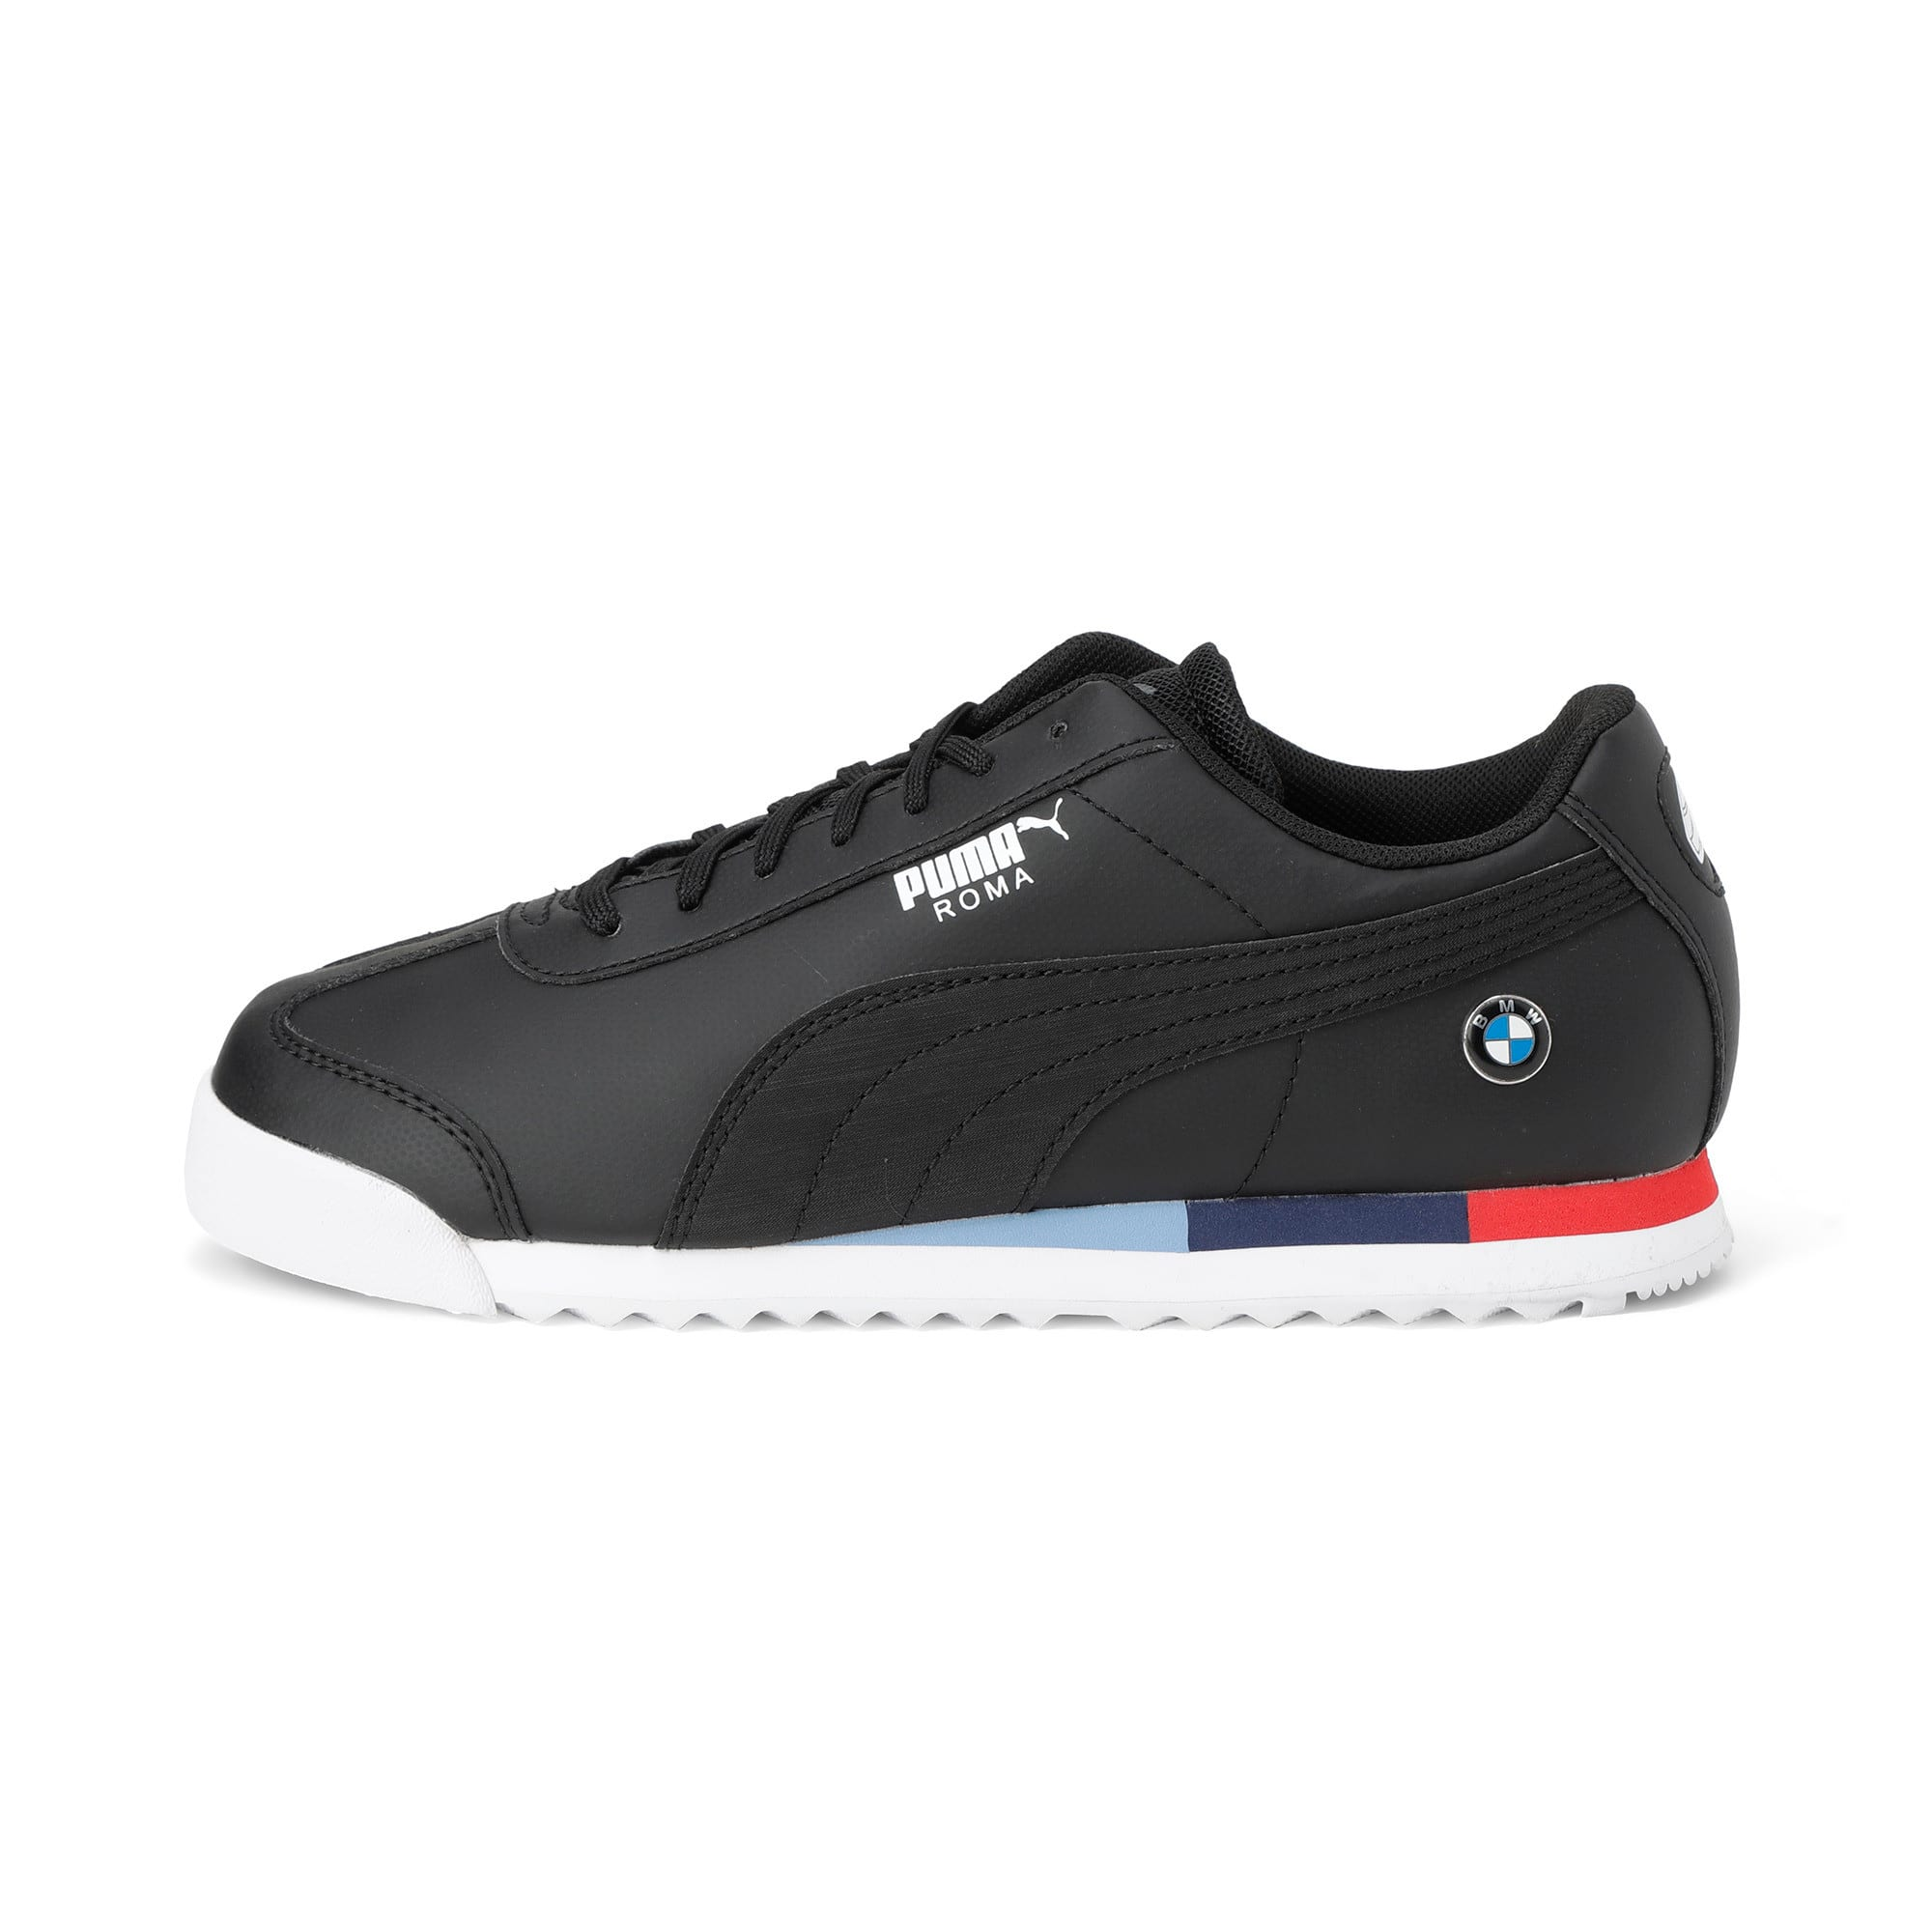 Thumbnail 1 of BMW Motorsport Roma Youth Trainers, Puma Black-Puma Black, medium-IND